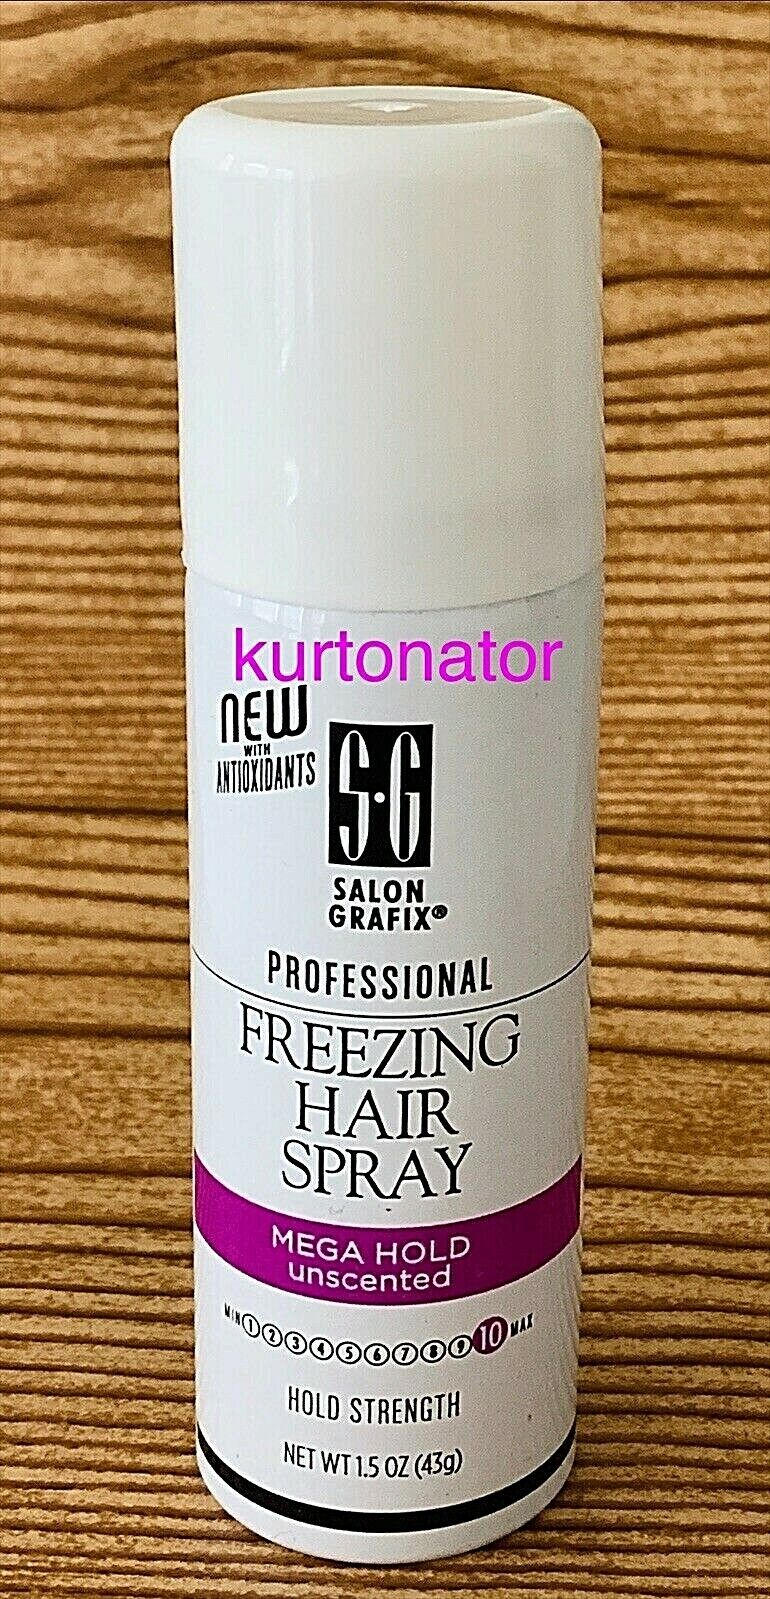 Lot of 12 Salon Grafix Freezing Hairspray MEGA HOLD UNSCENTE